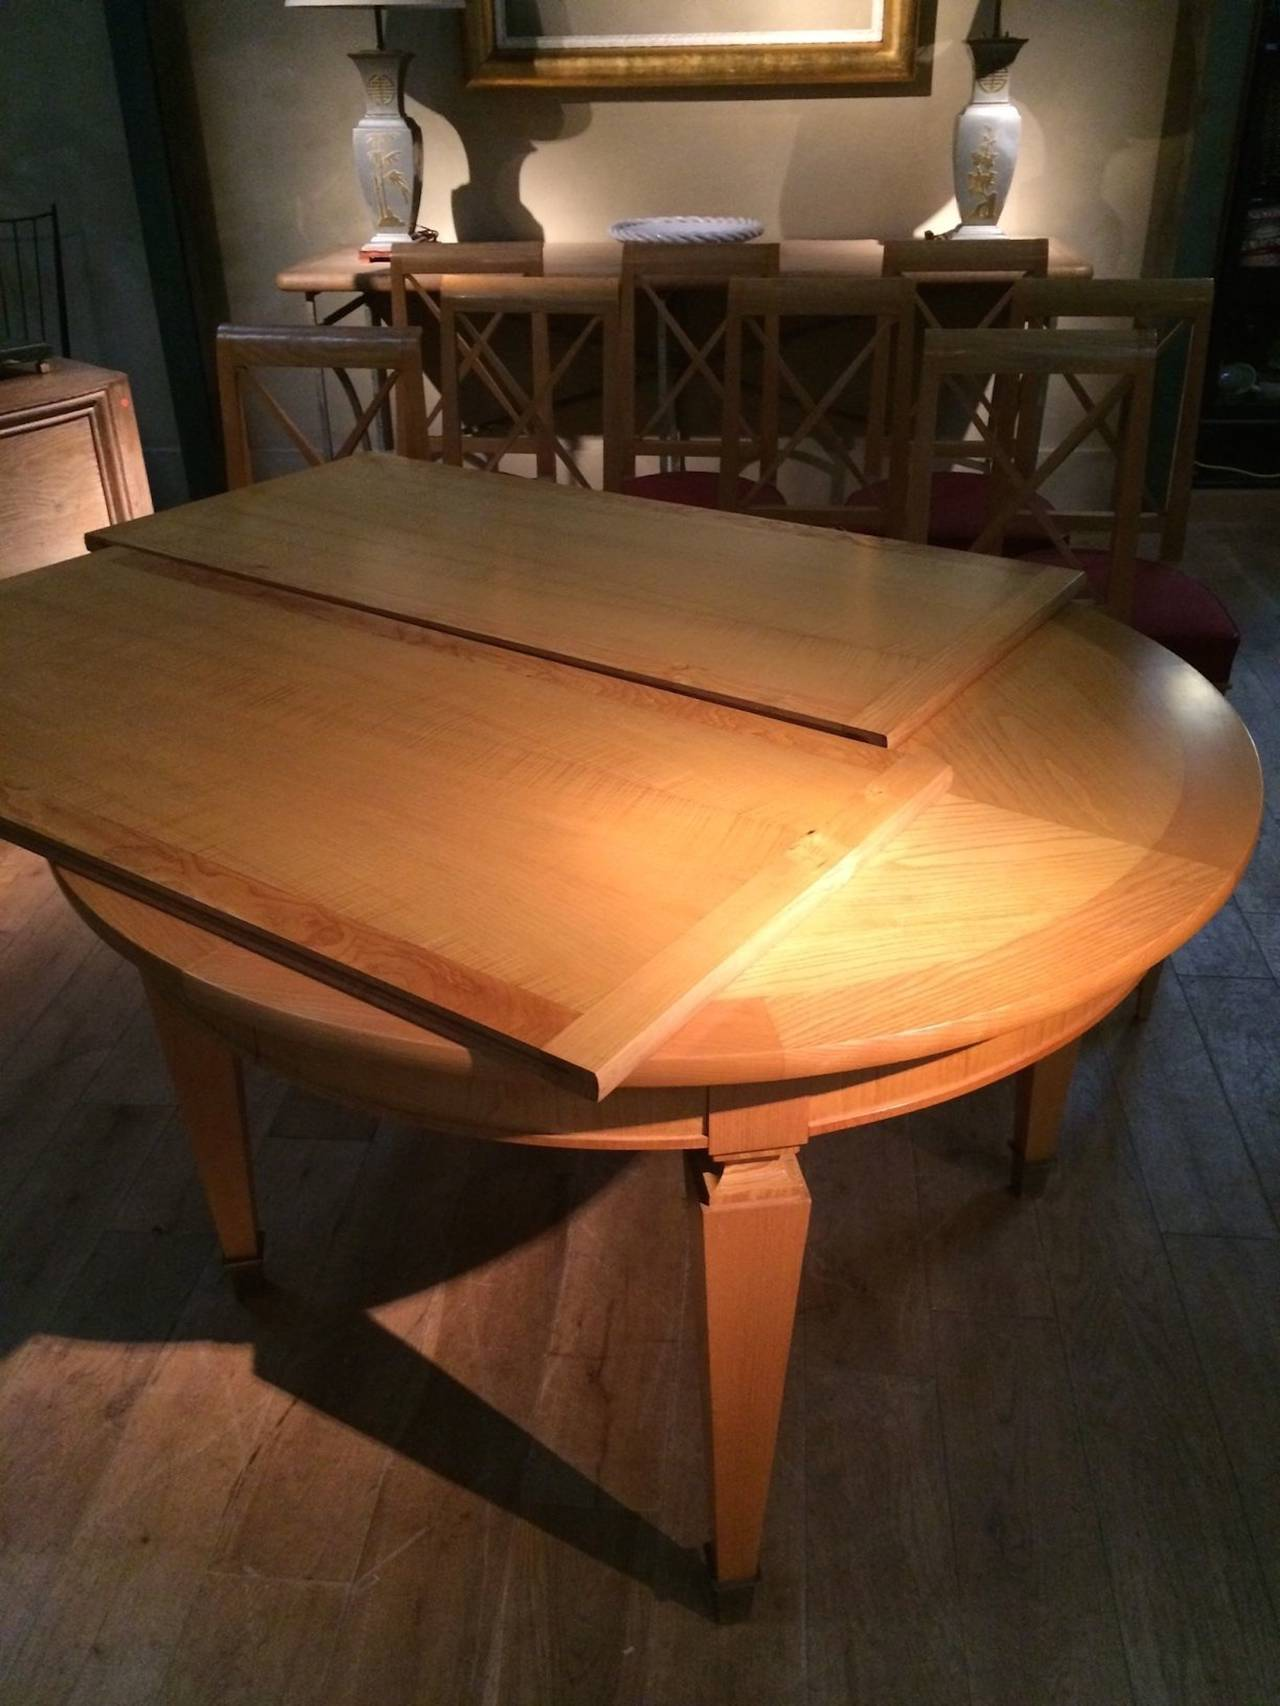 Mid-20th Century Mid Century Dining Table with Two Leaves and Brass Sabots, France, 1940s For Sale